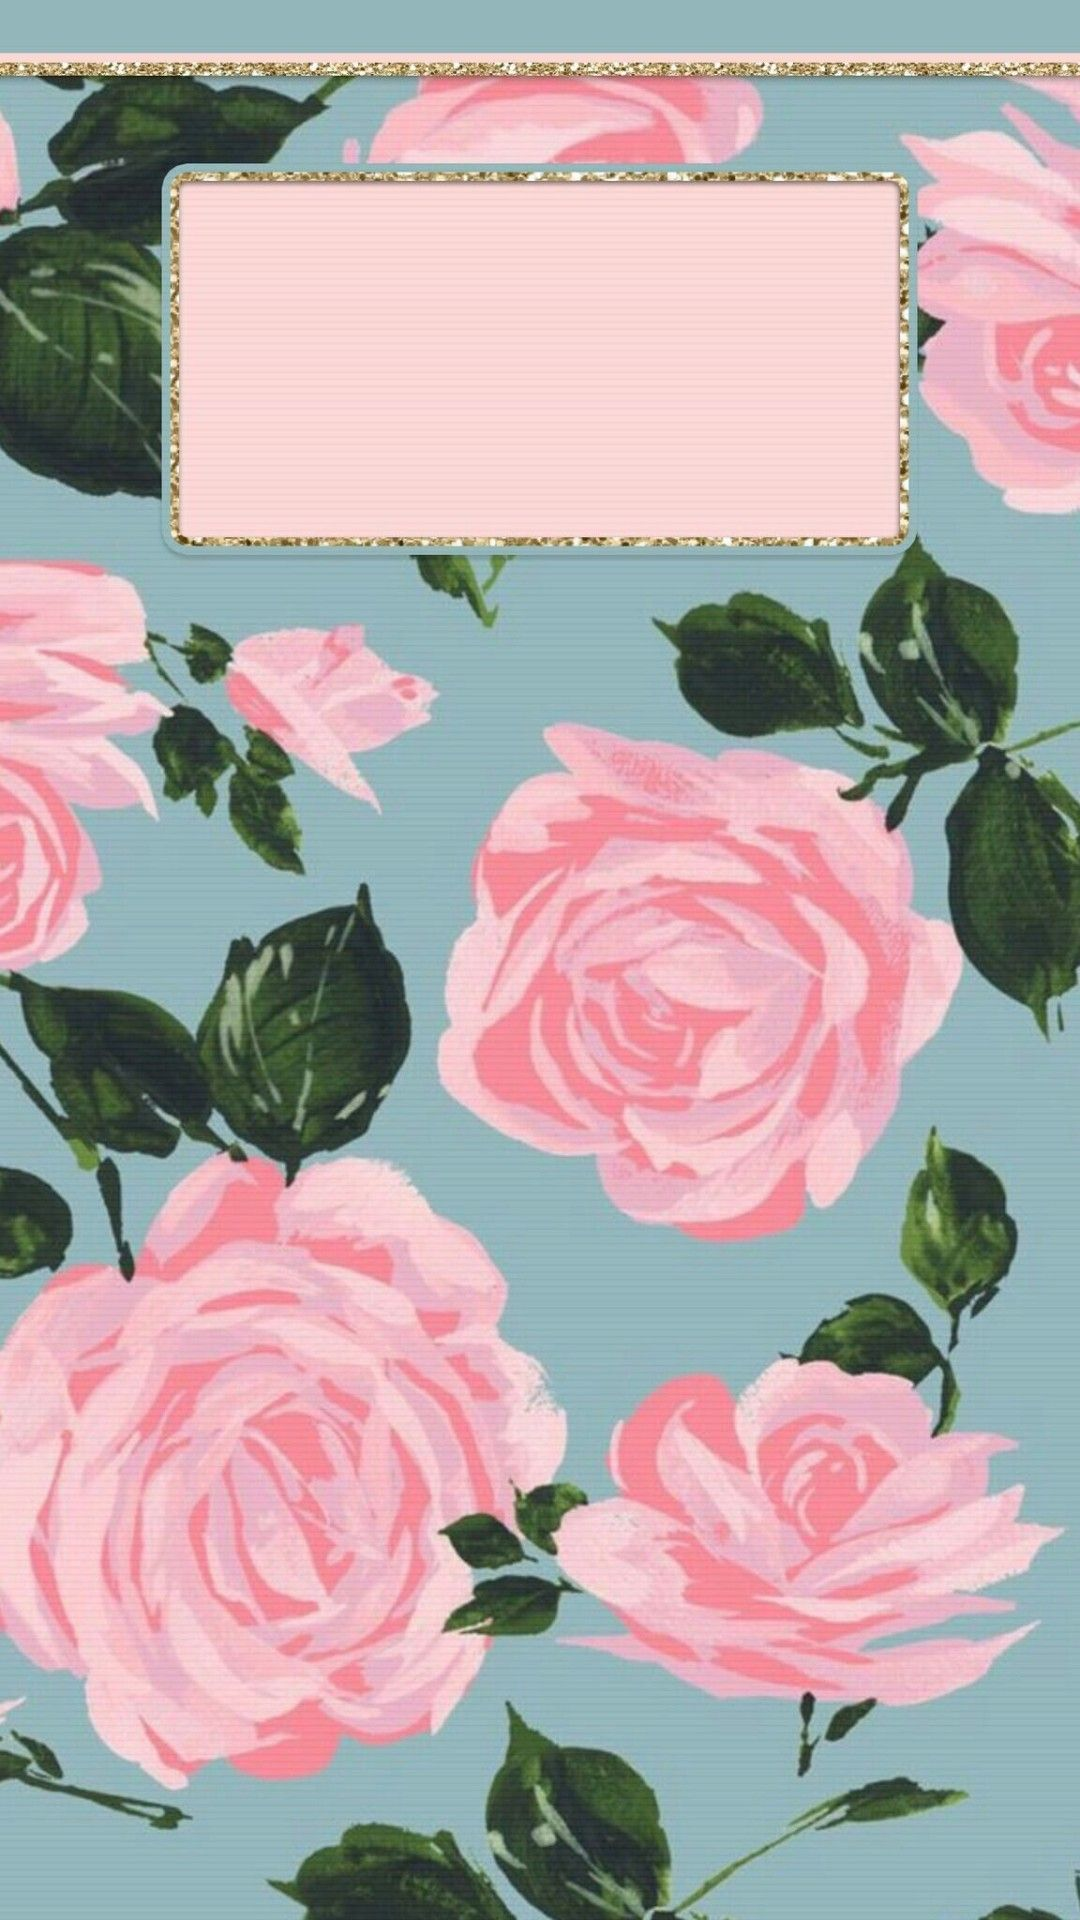 Wallpapers Pink Wallpaper Iphone Floral Wallpaper Pink Wallpaper Coolest cool flower wallpaper images